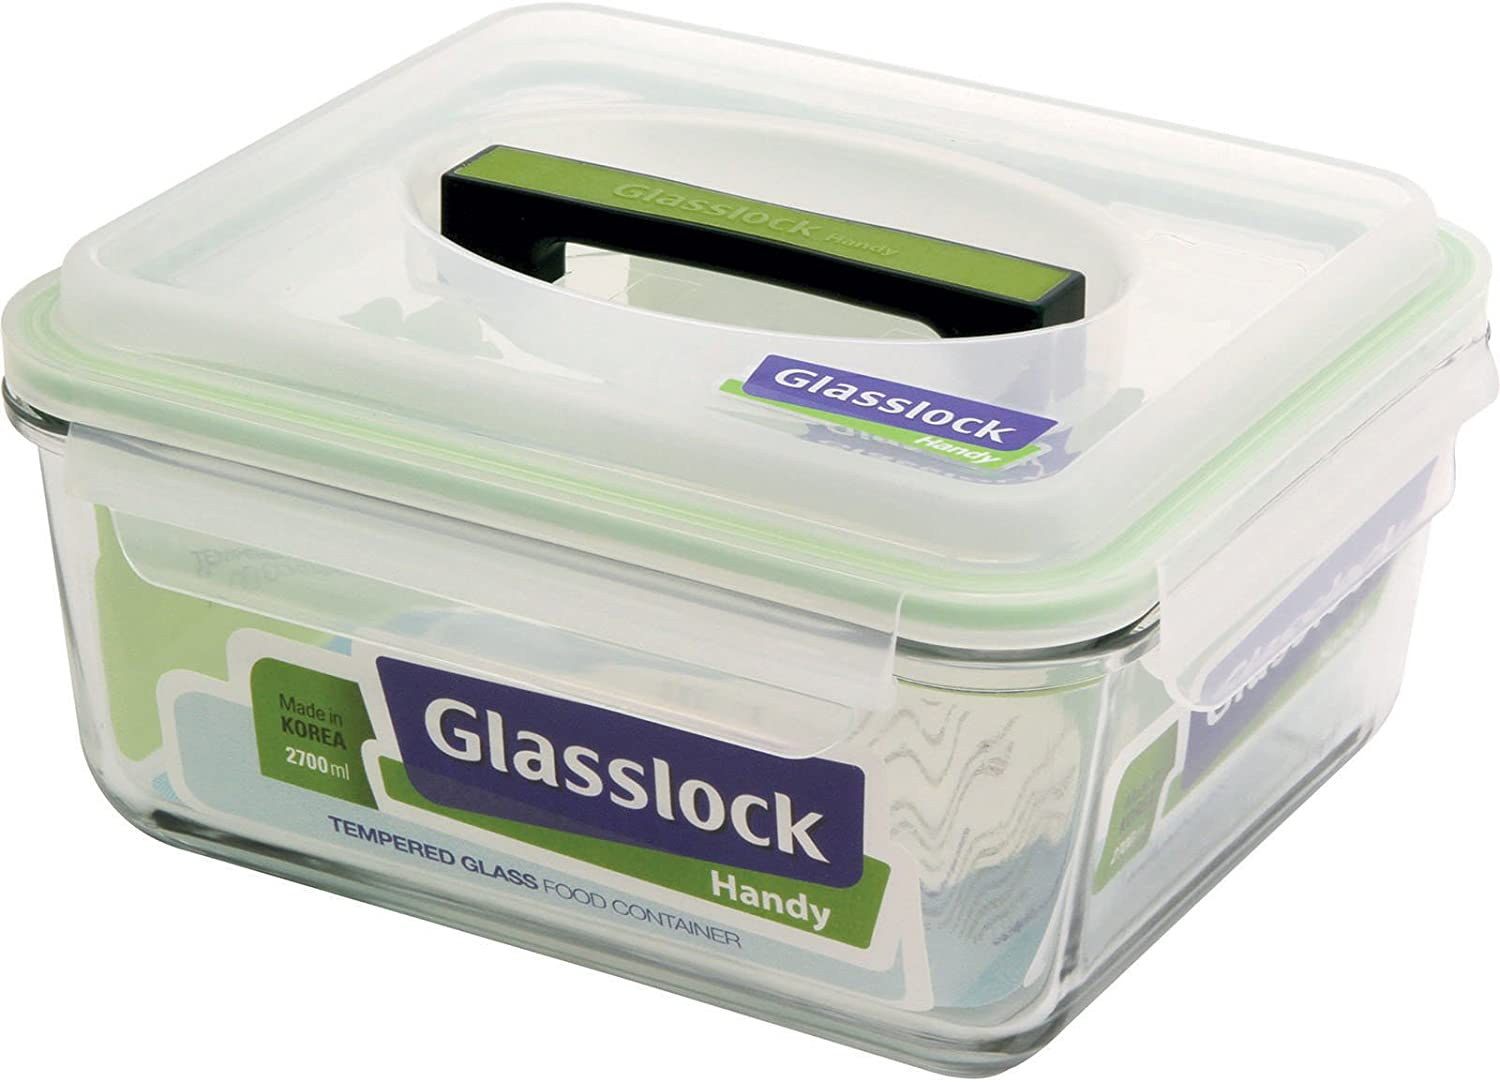 Glasslock 11350 11.4-Cup Rectangle Handy Container